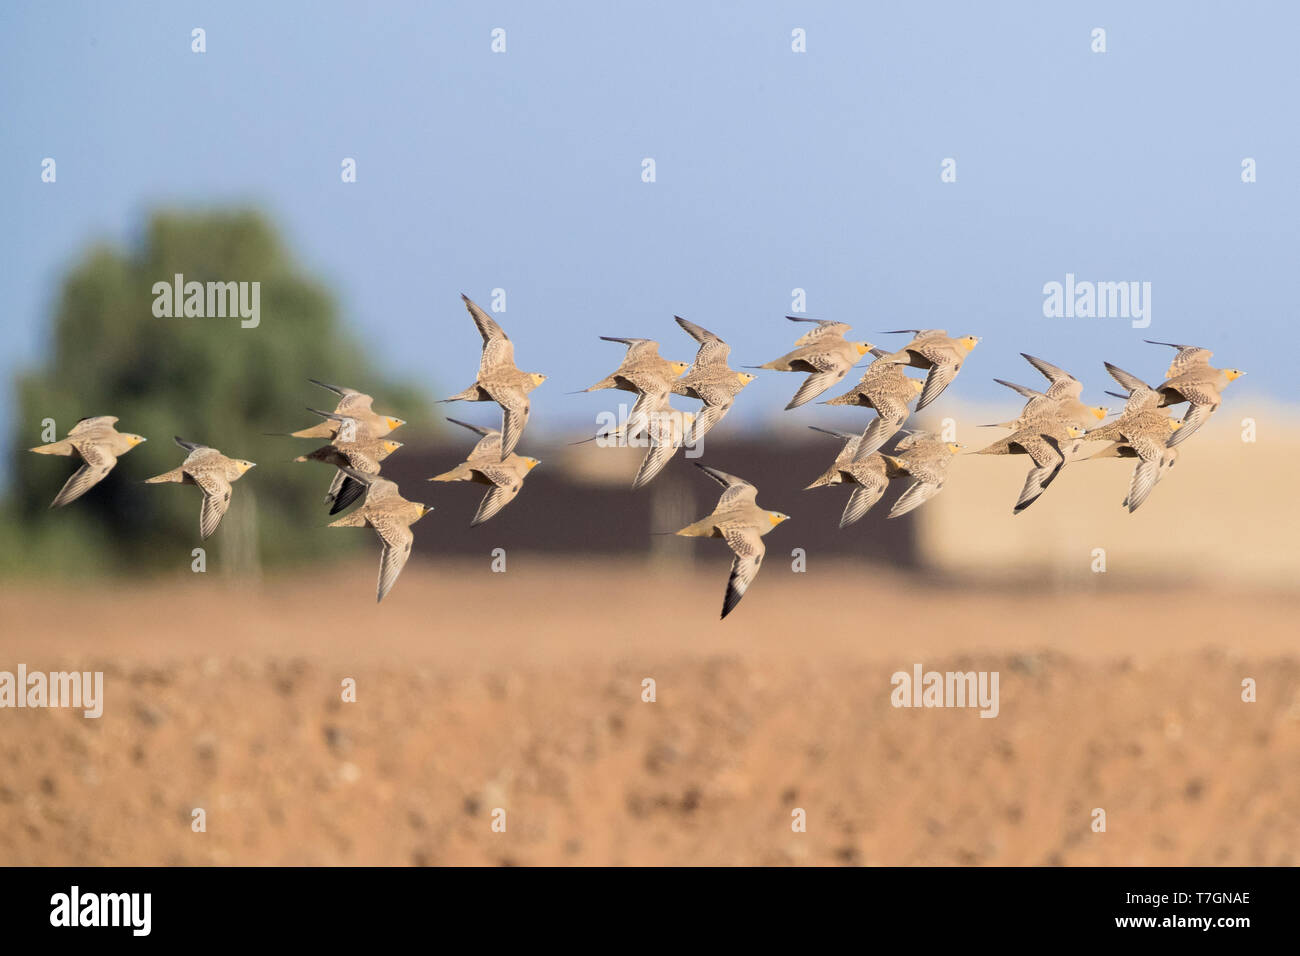 Spotted Sandgrouse (Pterocles senegallus), a flock flying over the desert in Morocco Stock Photo